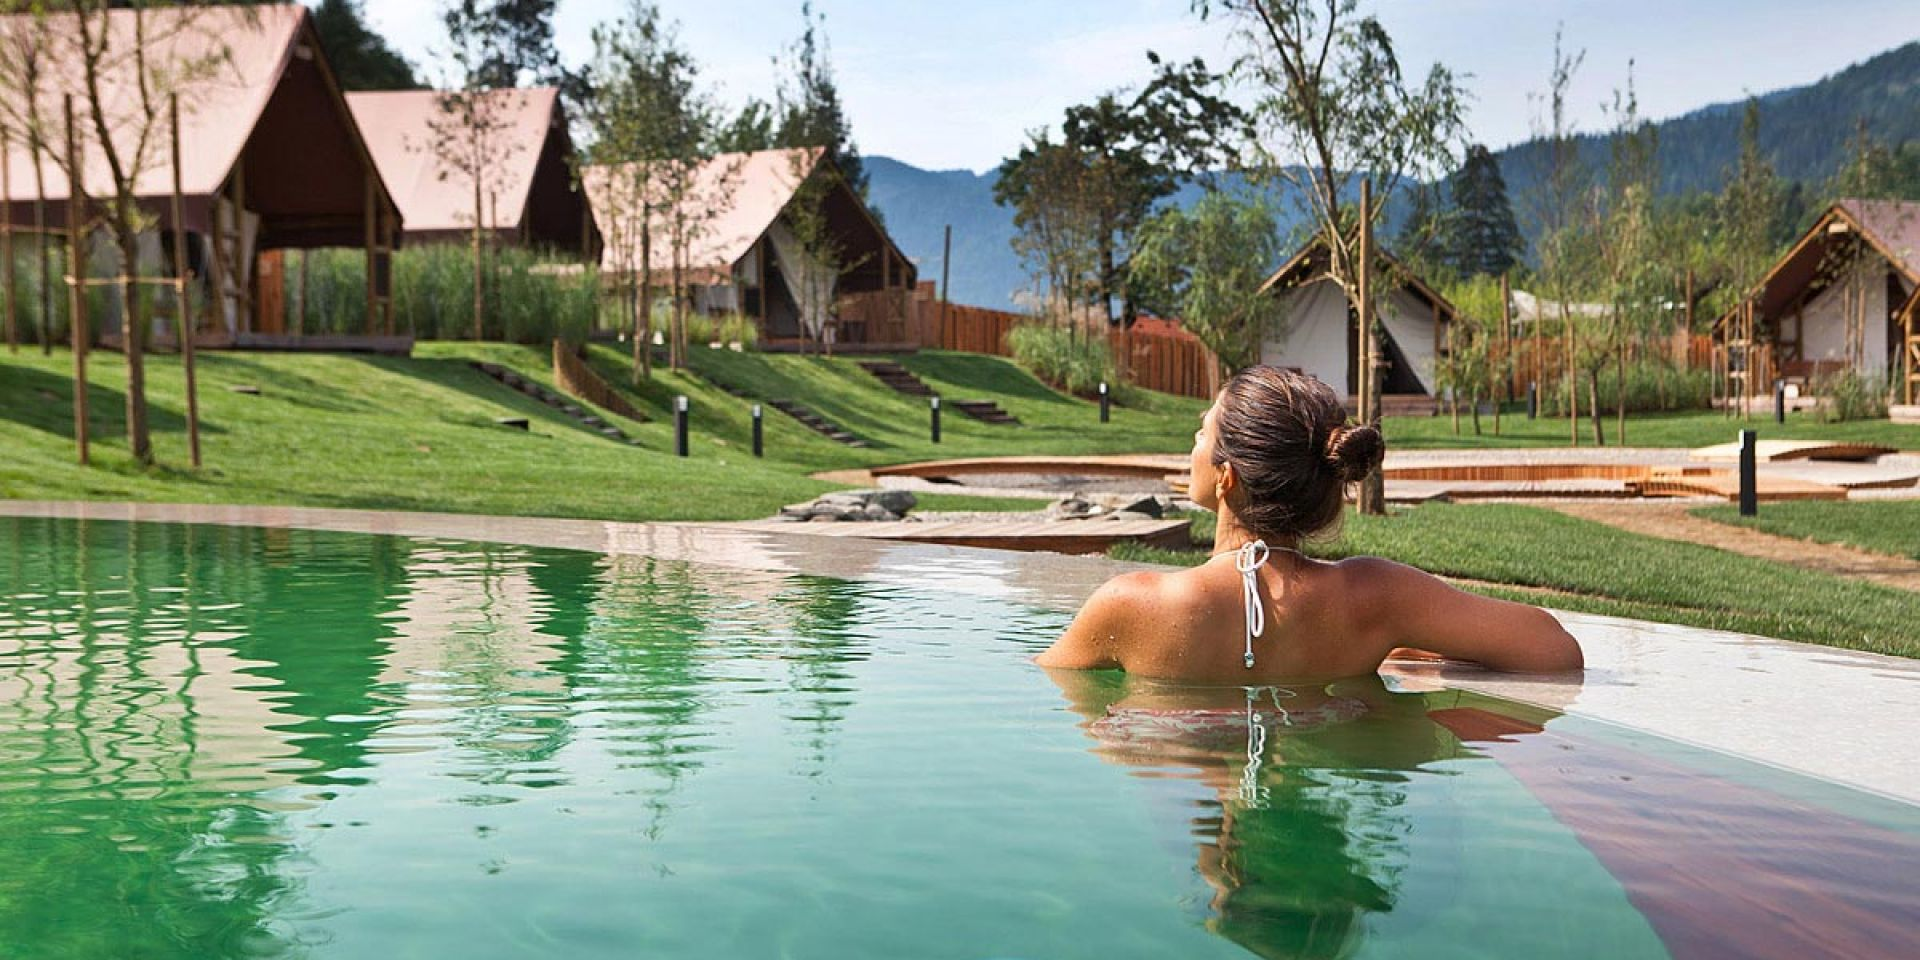 Glamping Sites With Hot Tubs – The Very Best Hot Tub Glamping